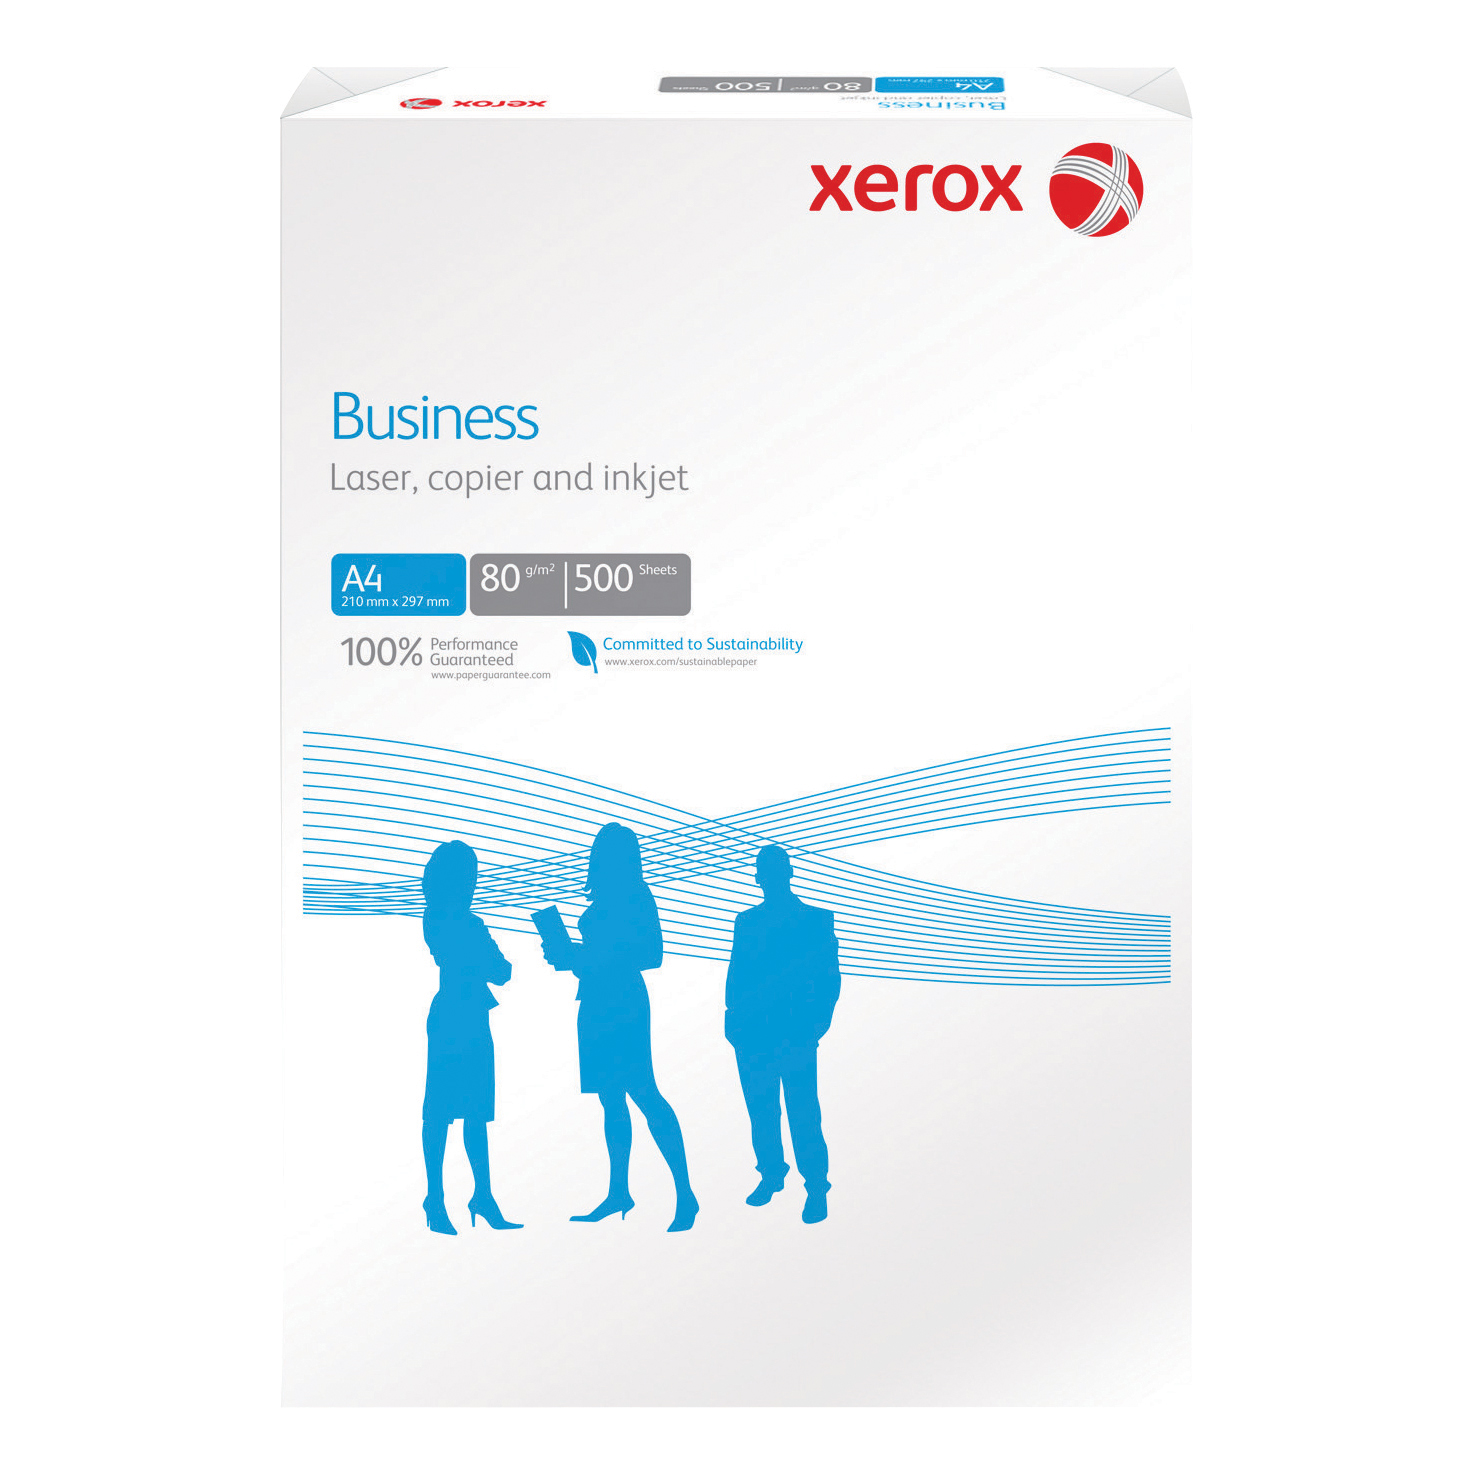 Xerox Business Multifunctional Paper Ream-Wrapped 80gsm A4 White Ref 62283 [500 Sheets]